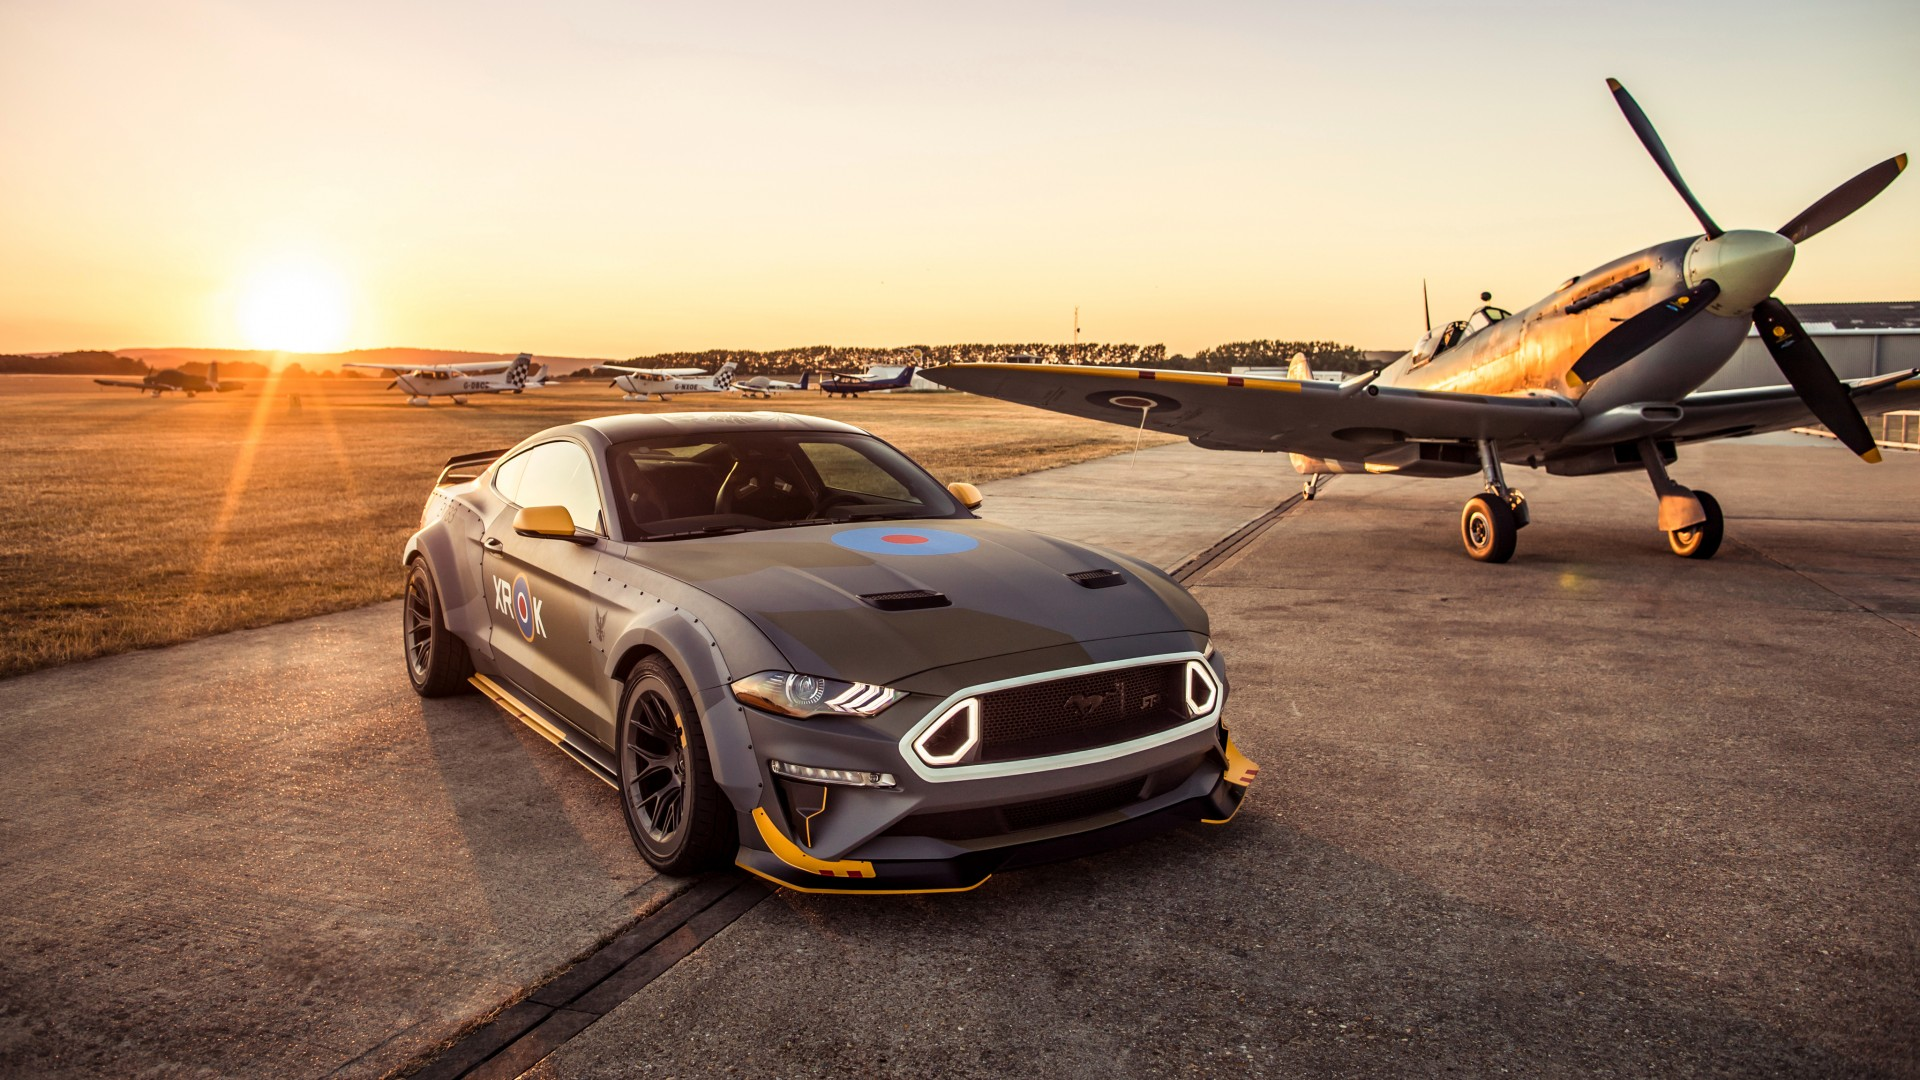 Ford eagle squadron mustang gt 2018 4k 3 wallpaper hd car wallpapers id 10823 - Ford mustang wallpaper download ...